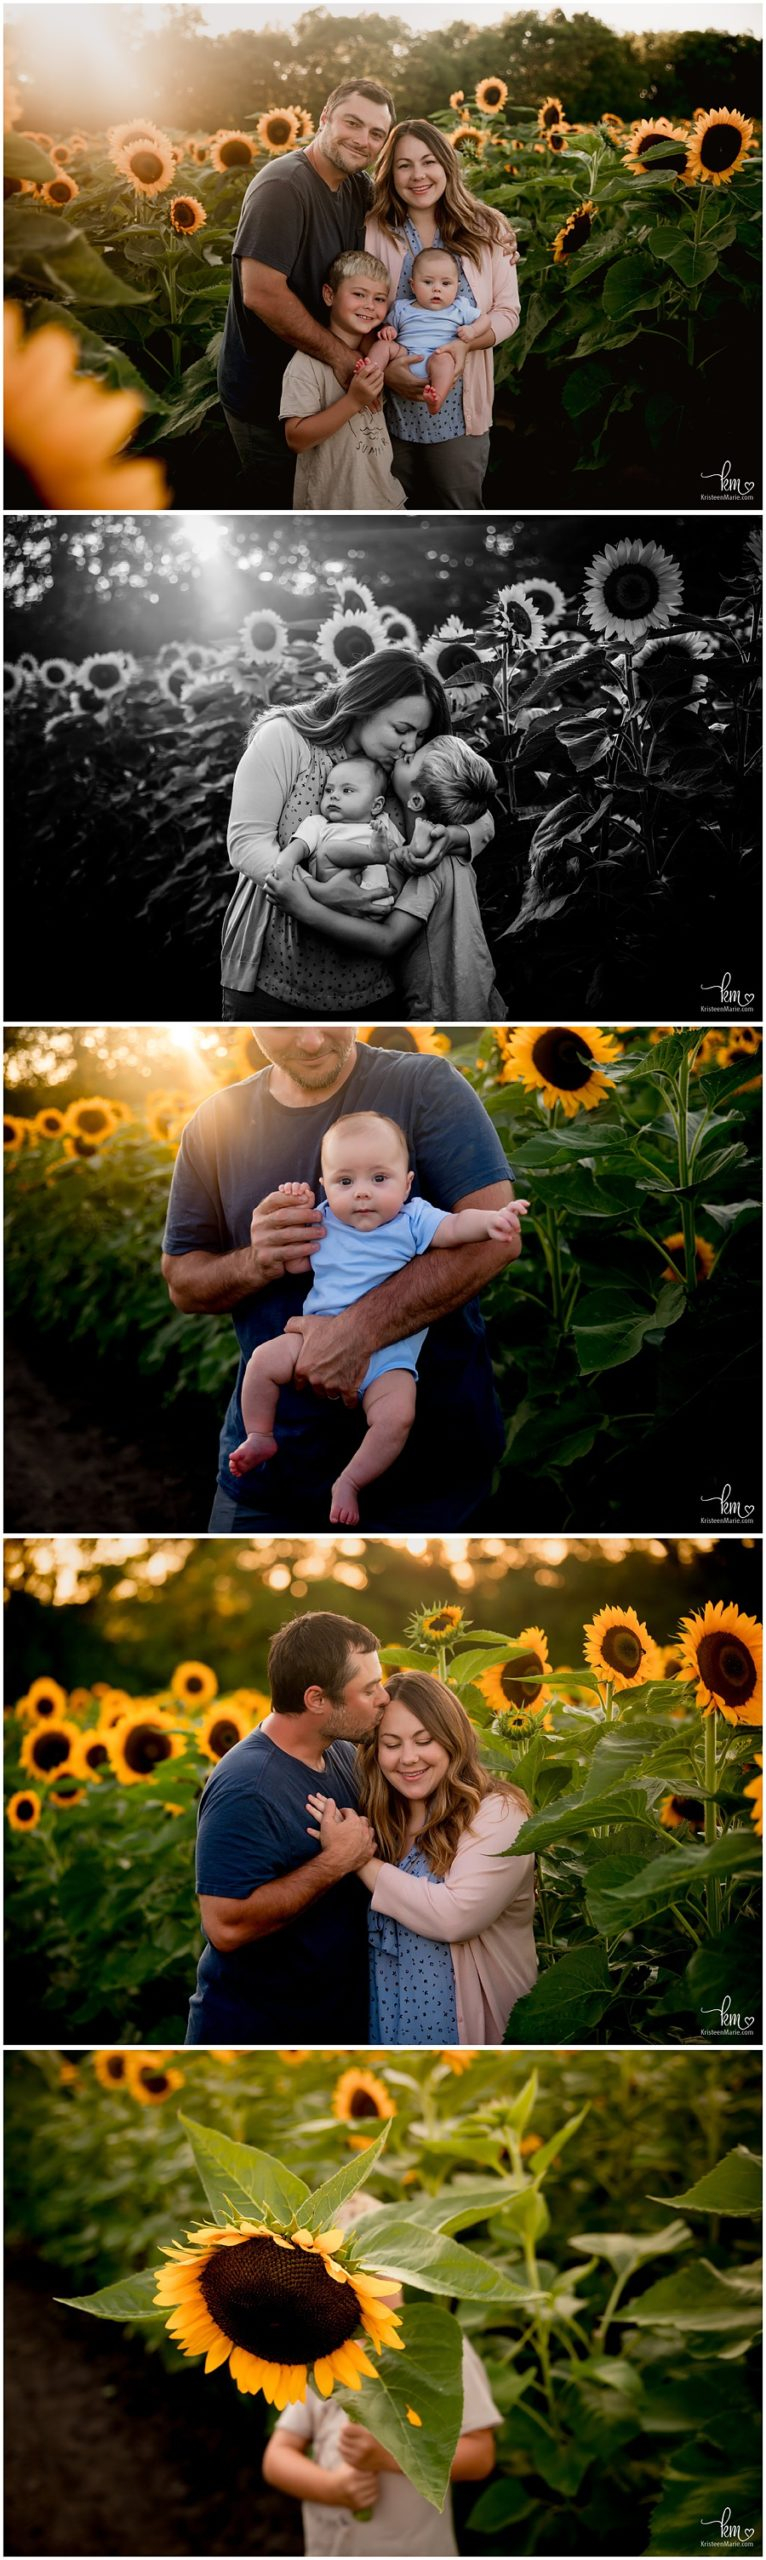 Indianapolis family photographer - sunflower session